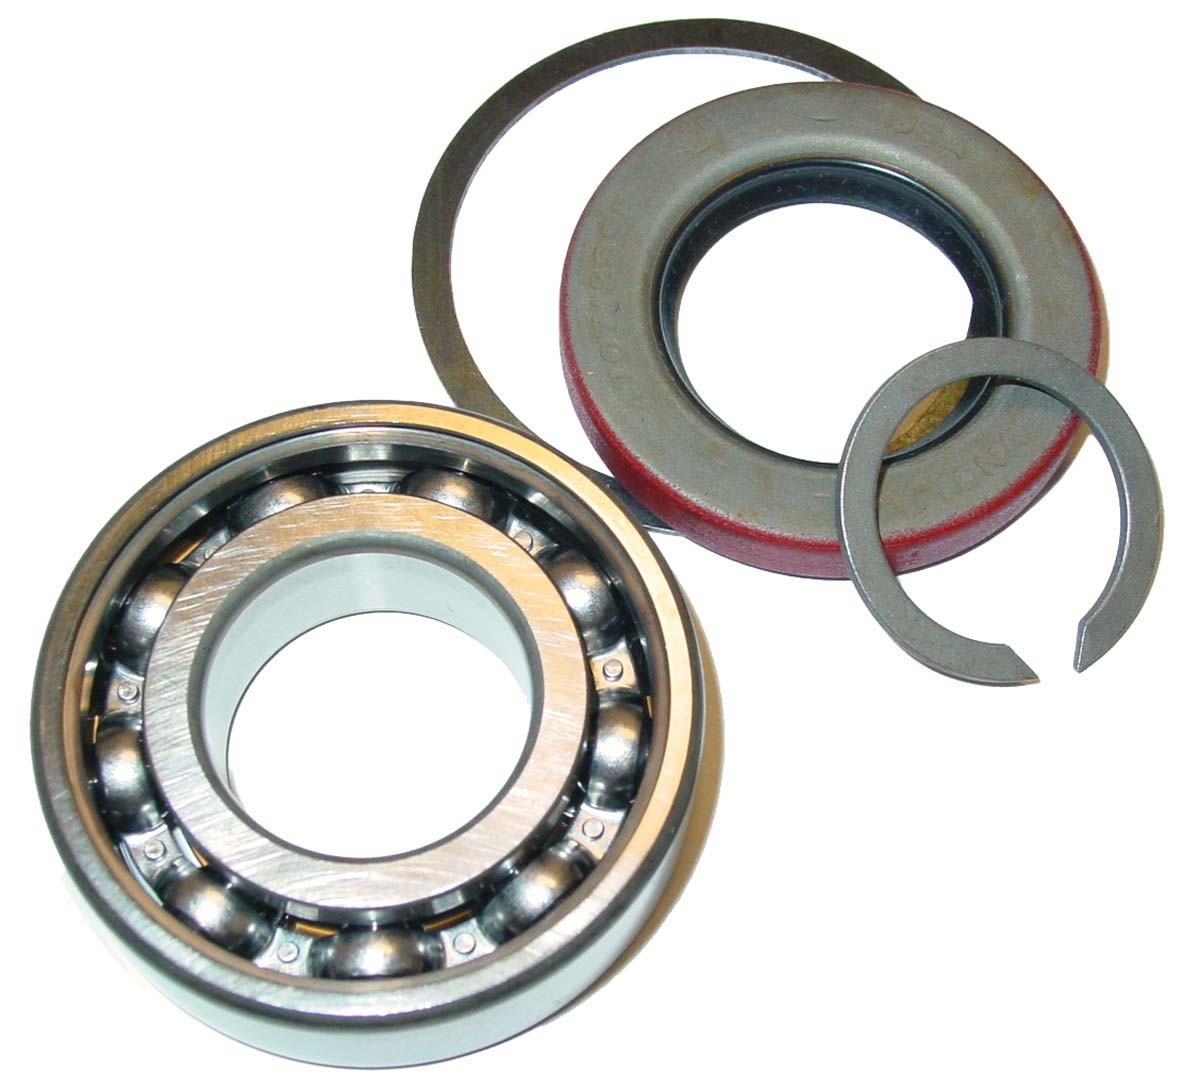 Farmall Cub Replacement Parts : Pto bearing kit and related parts farmall